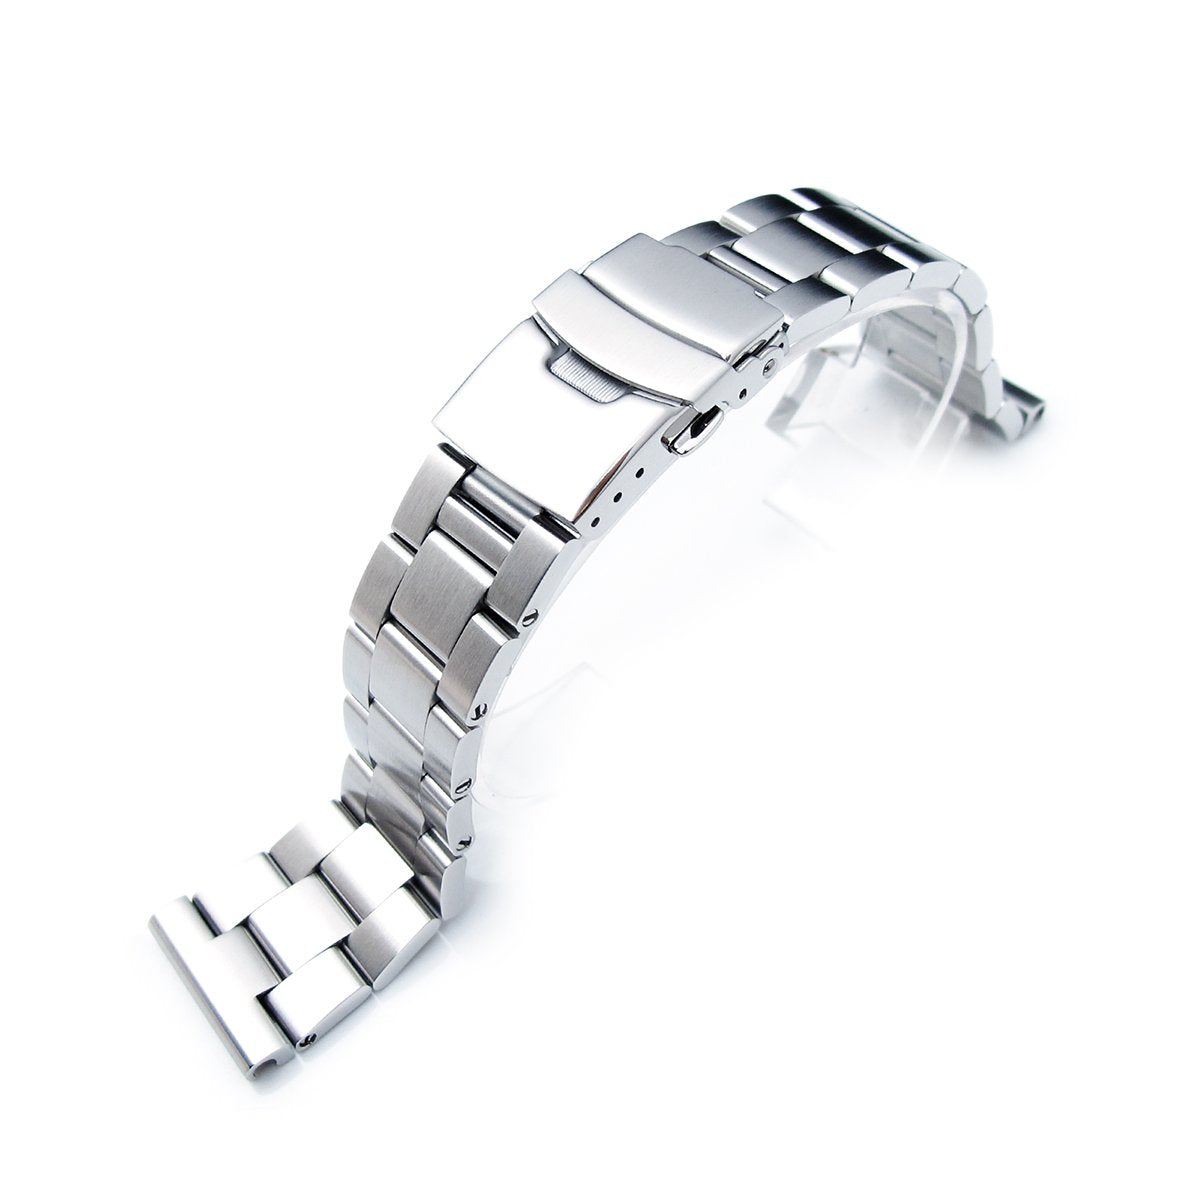 22mm Super-O Boyer watch band Solid Links Straight Lug Strapcode Watch Bands